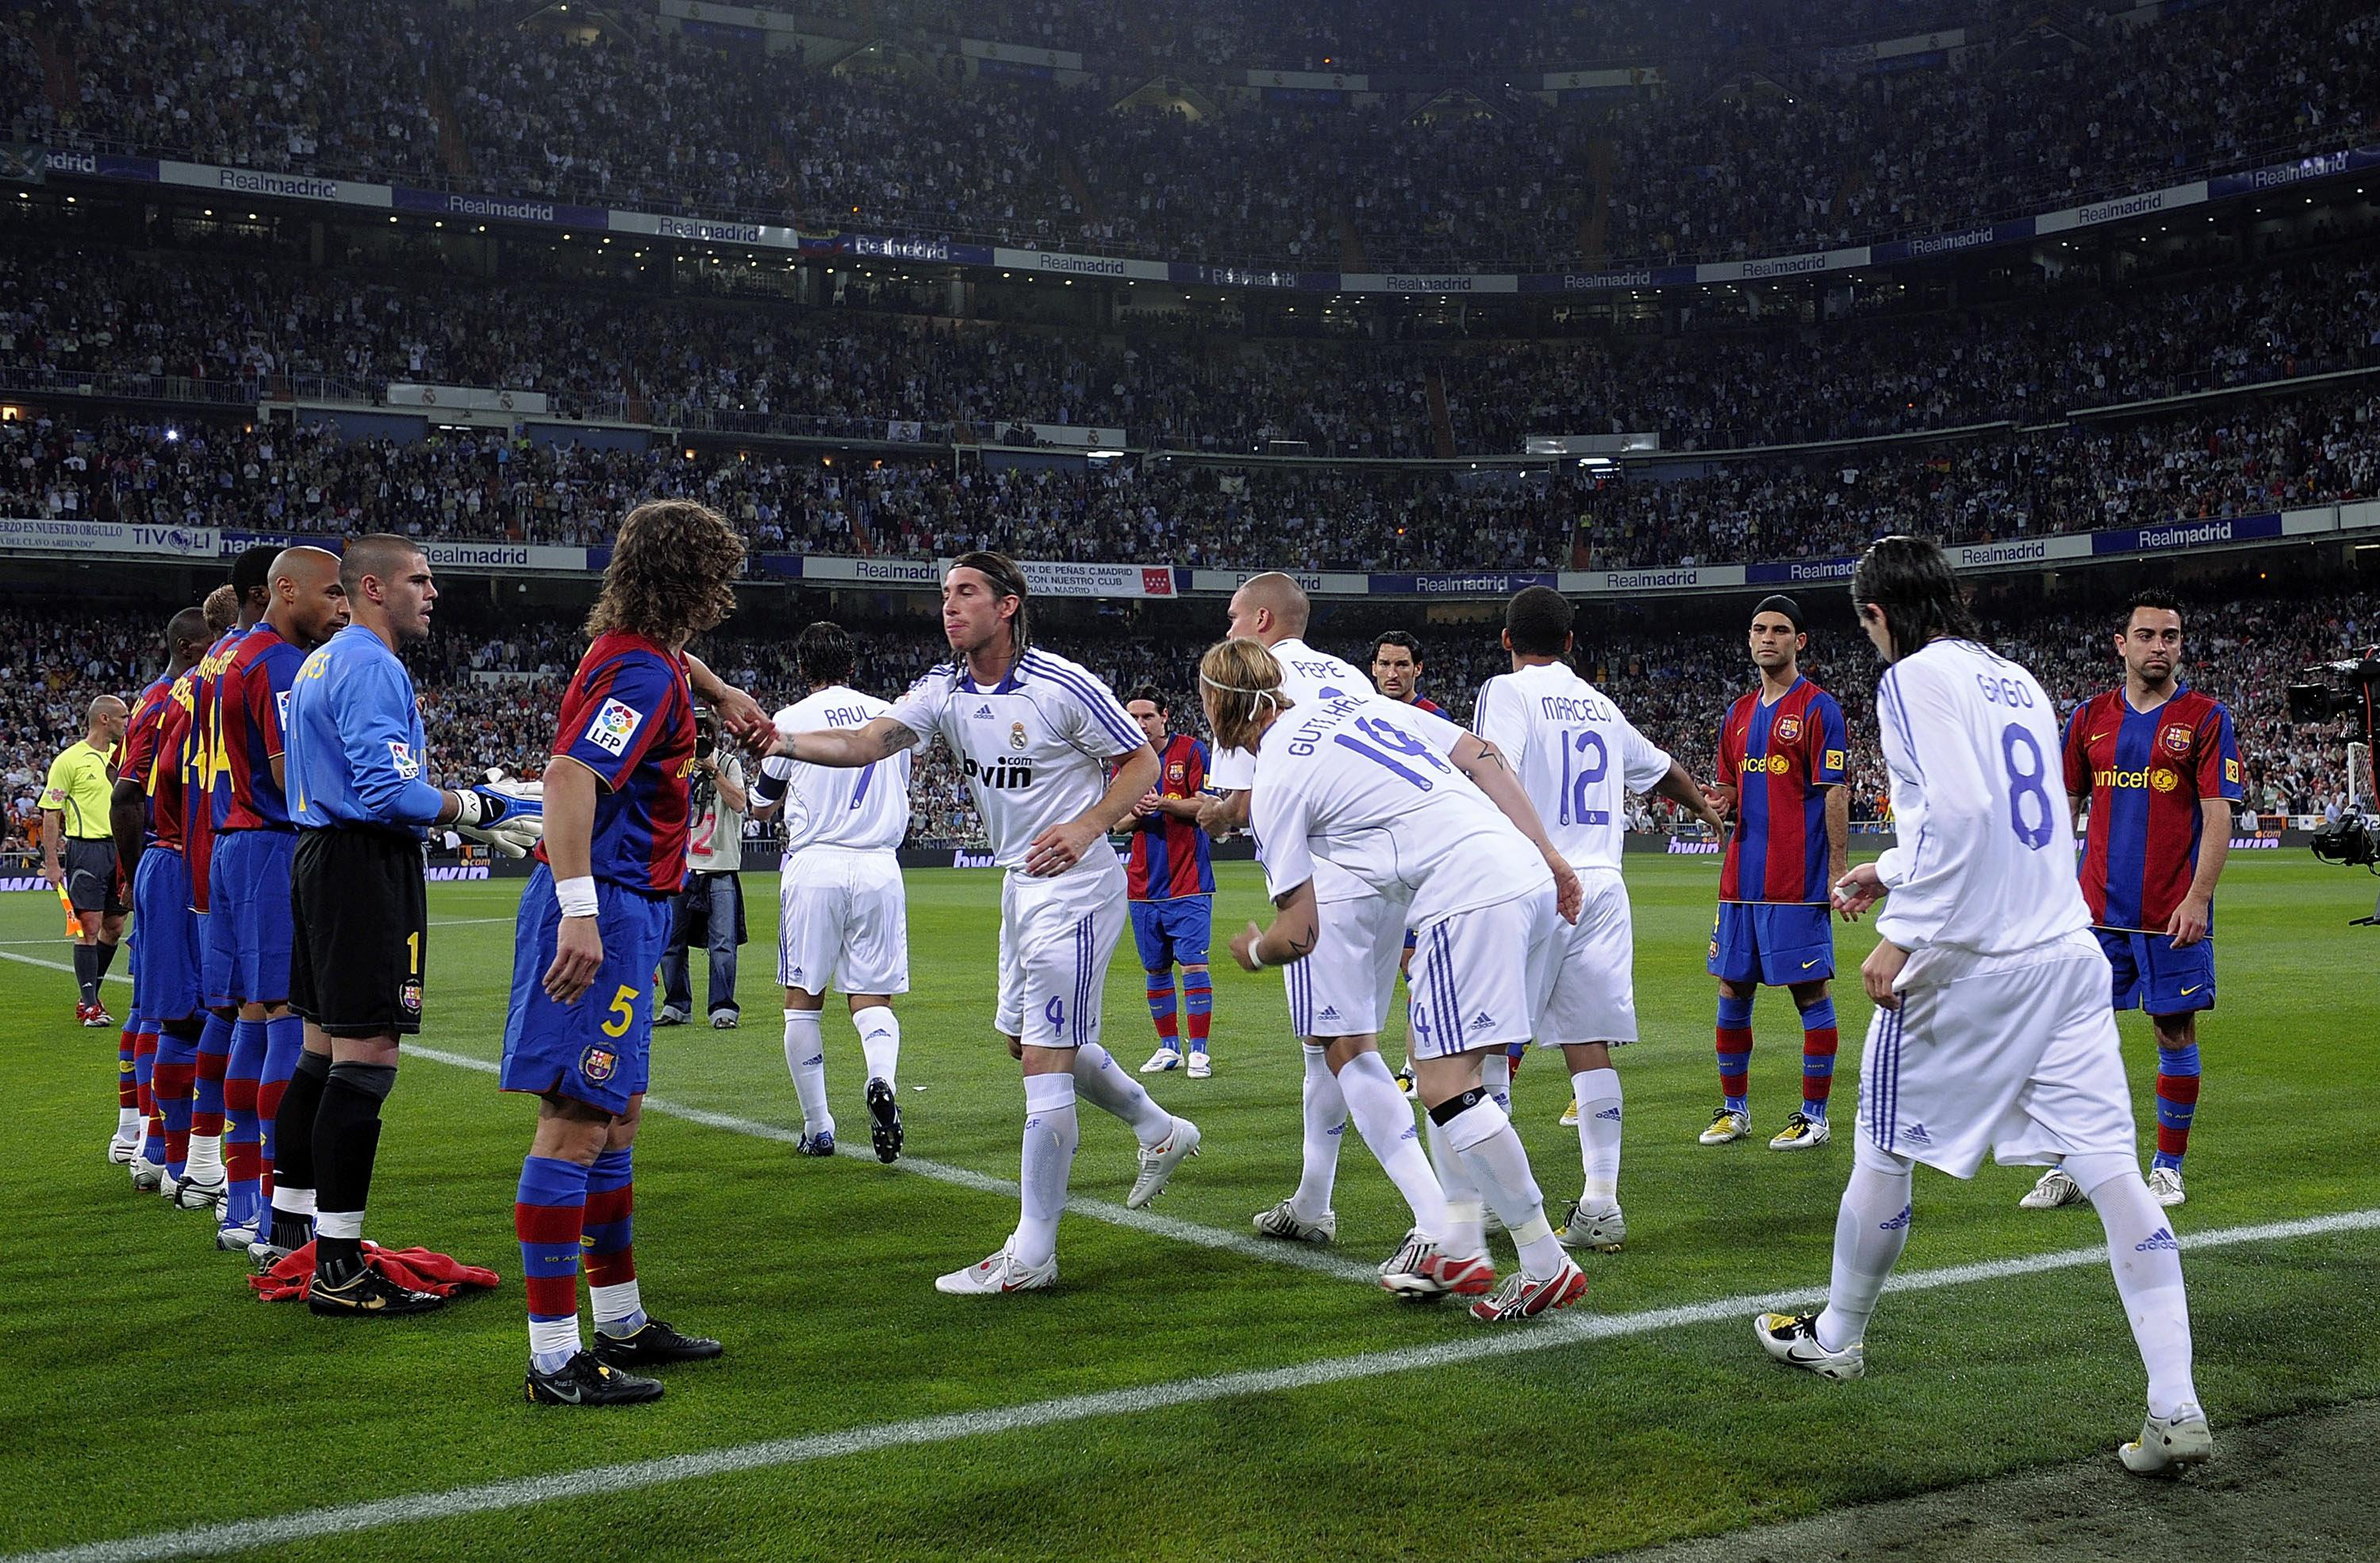 Barca lined up for Real in 2008